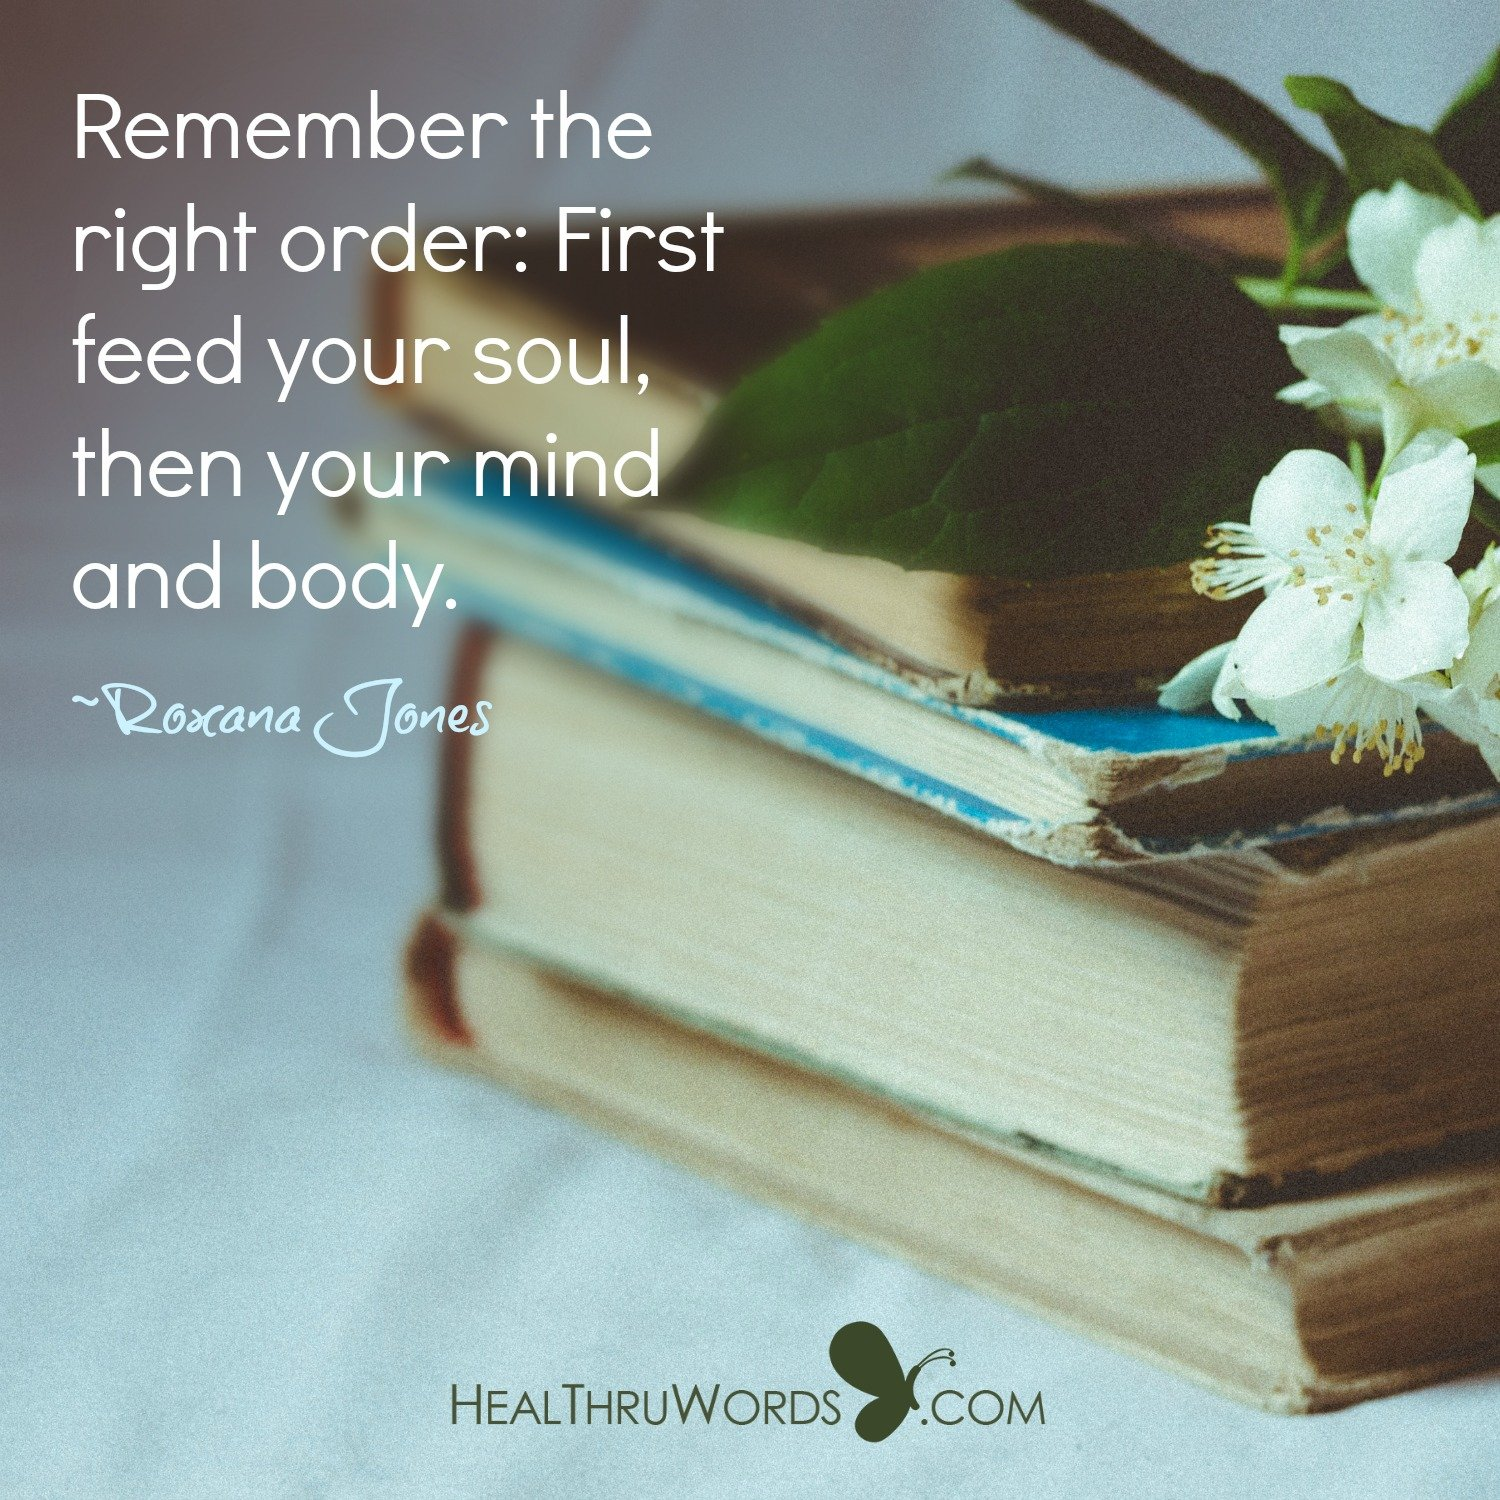 Inspirational Image: Right Order